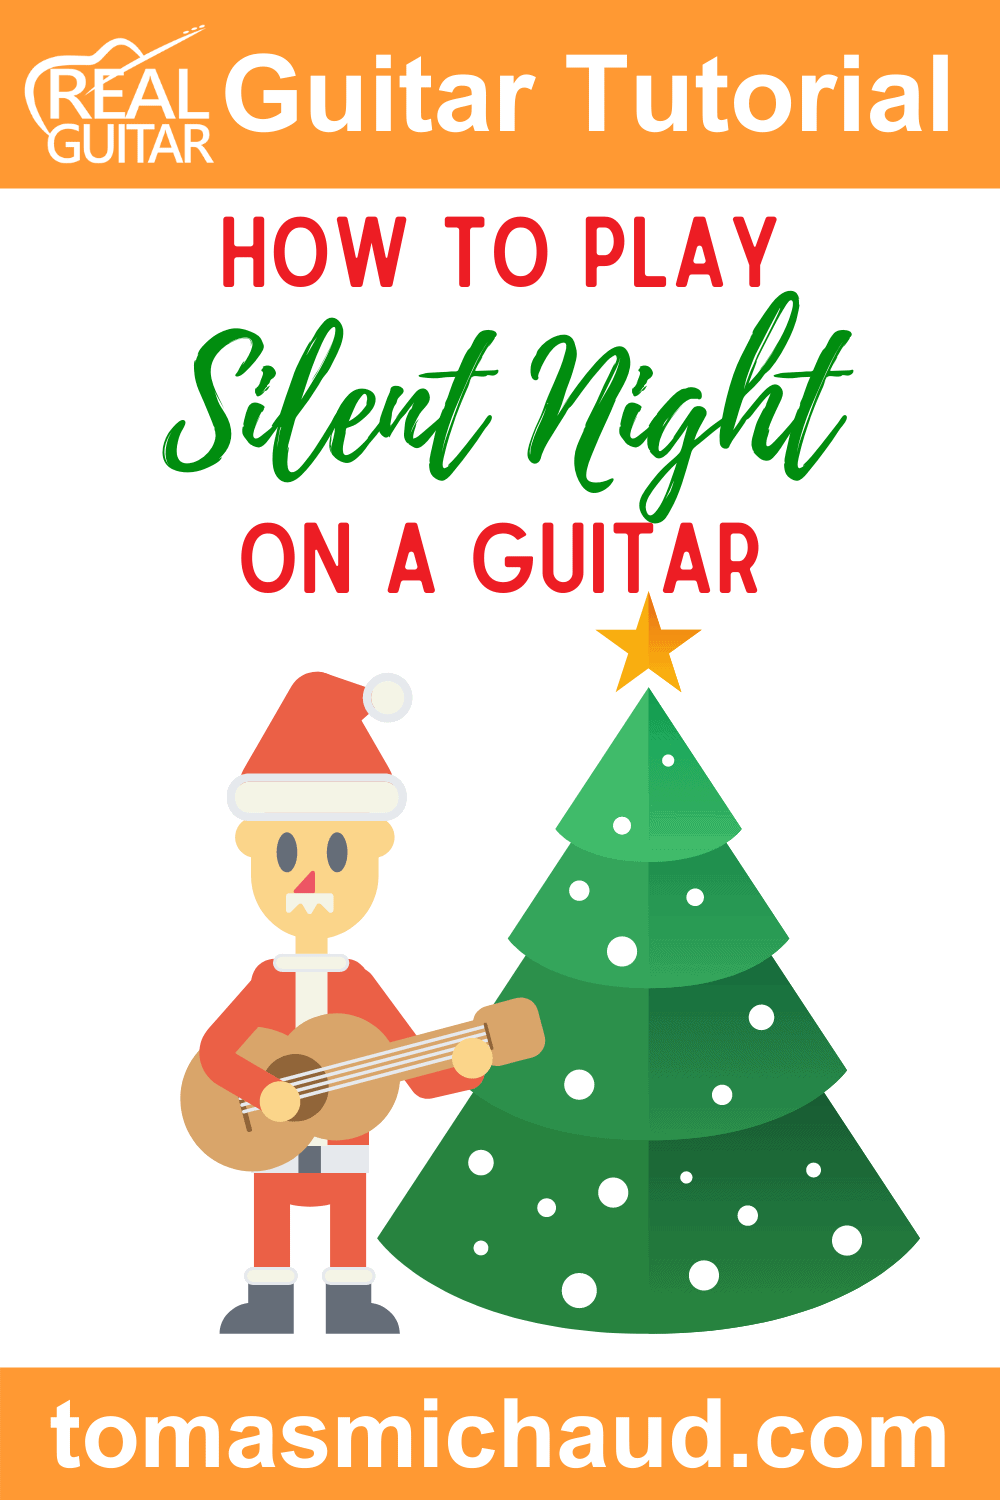 How To Play Silent Night On A Guitar